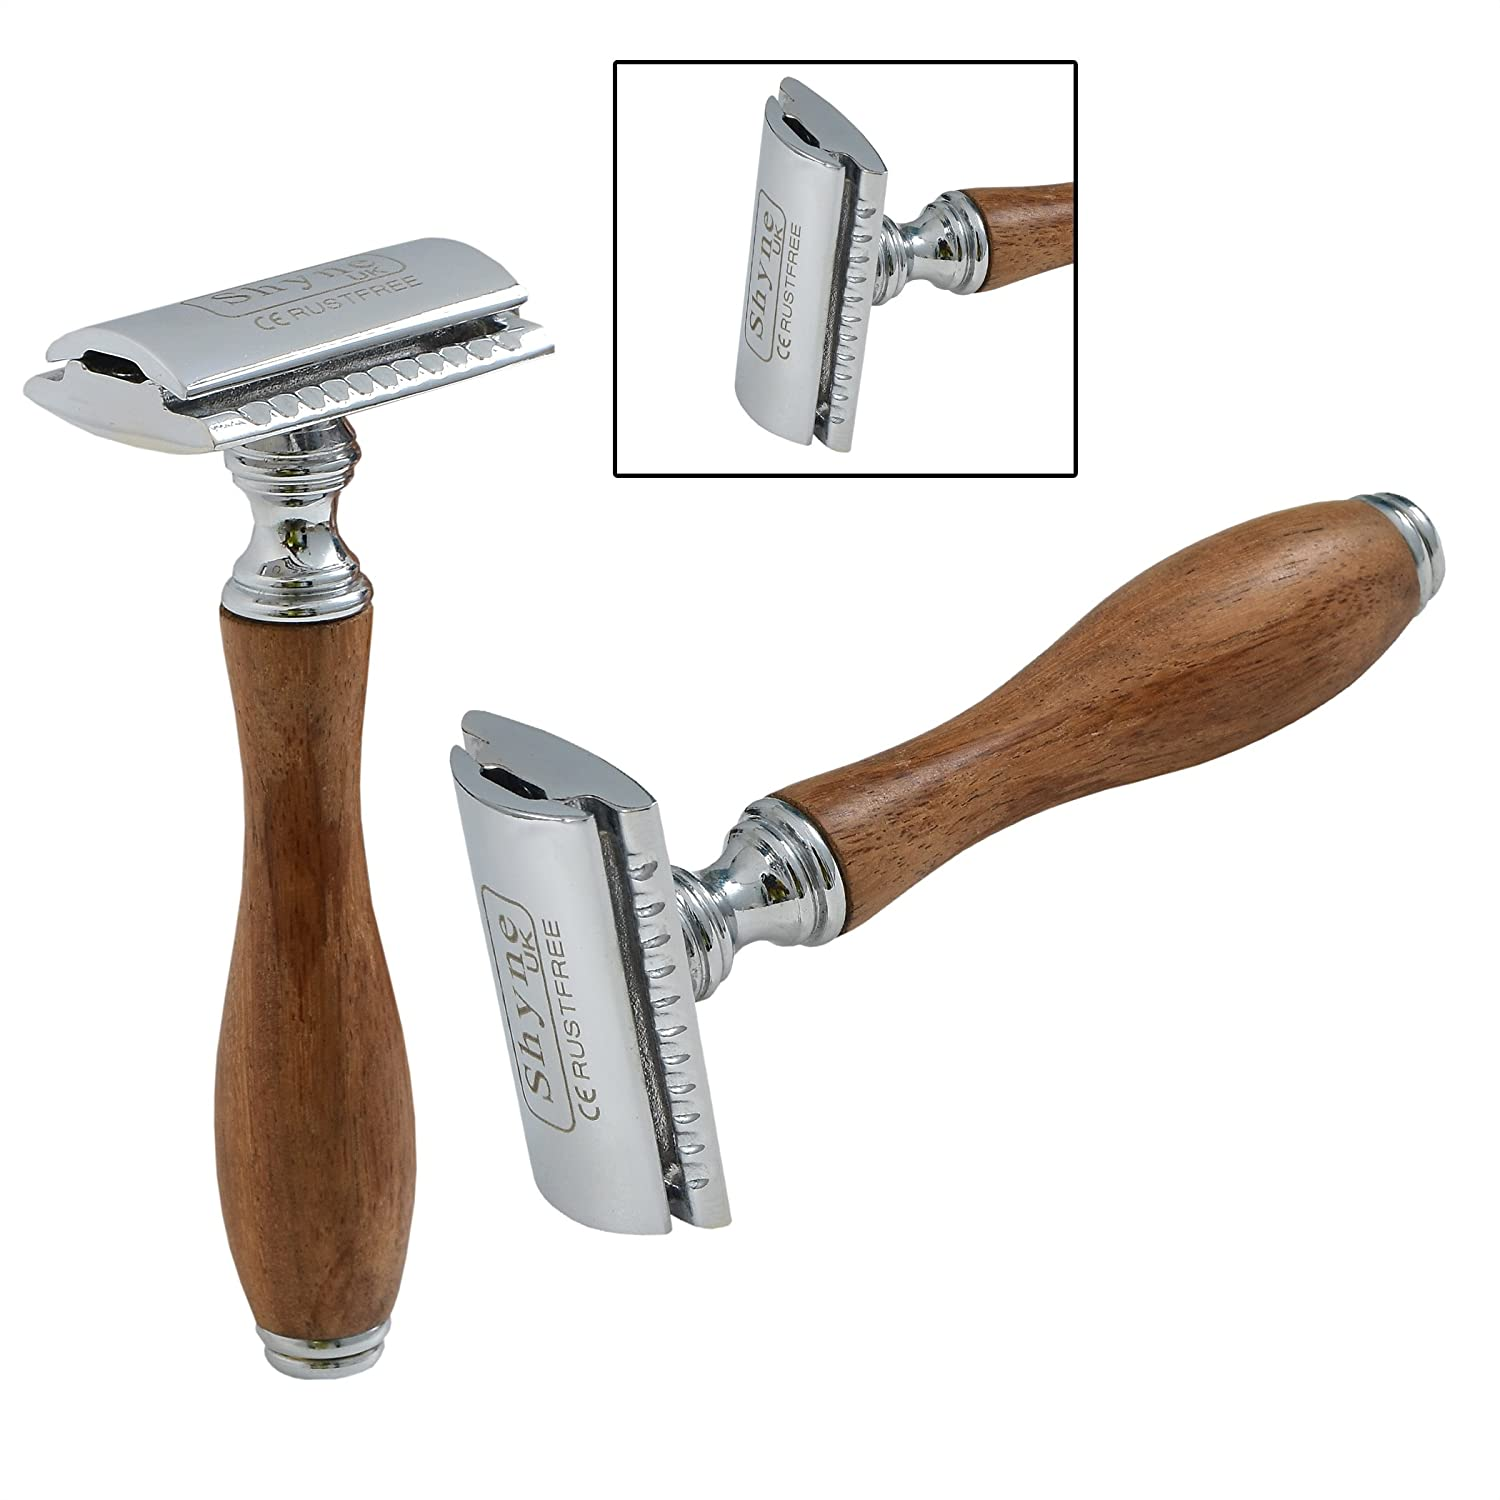 Wooden Handle Safety Razor double edge shaving blades shaver NORMAN INTERNATIONAL